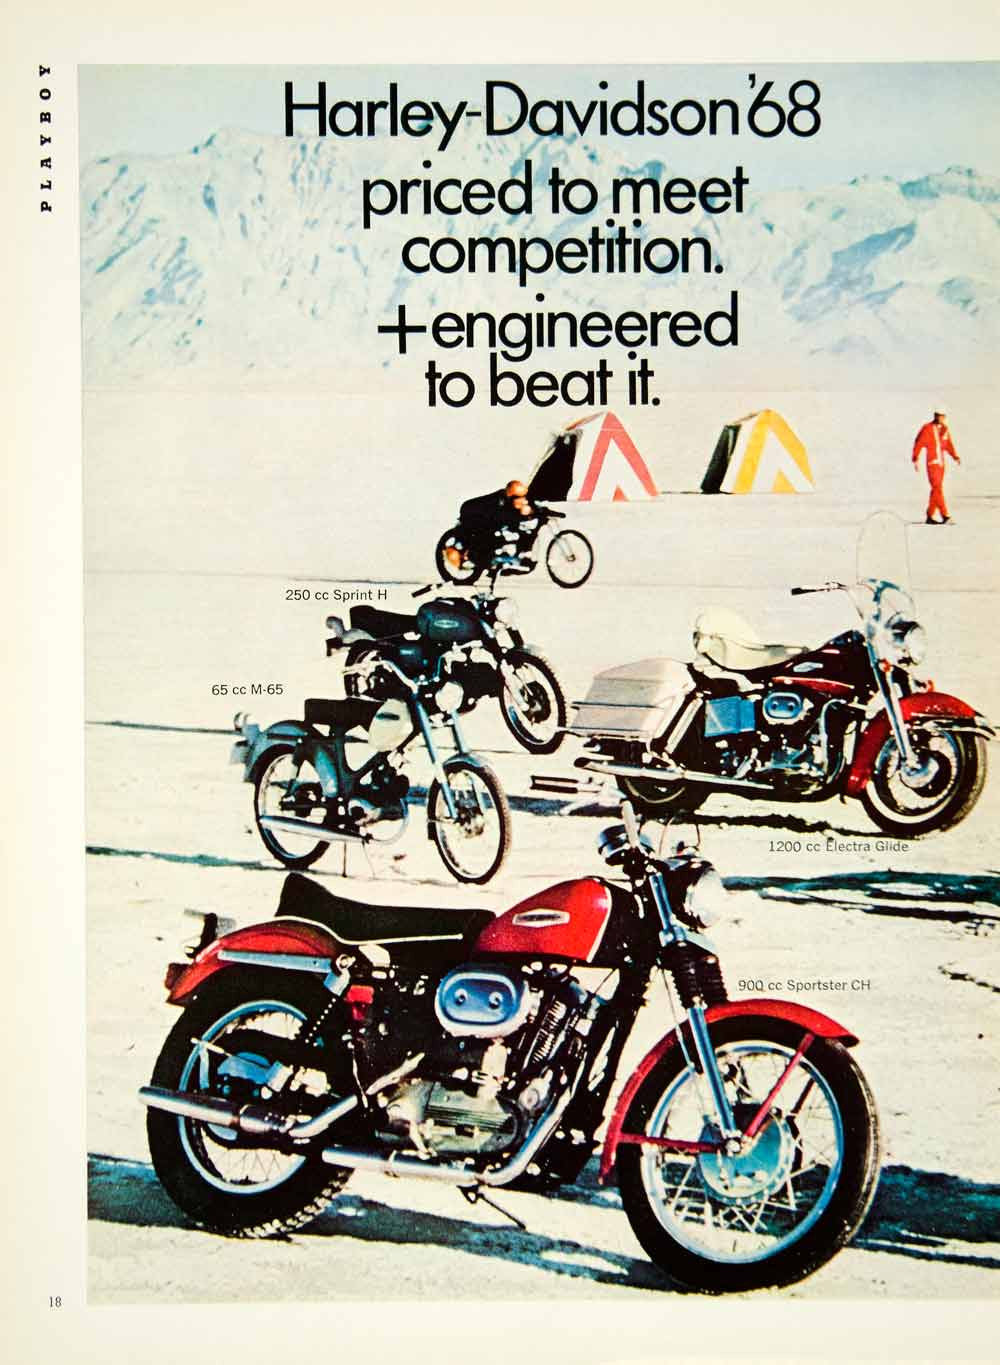 1968 Ad Harley Davidson Motorcycles Sprint H Electra Glide Sportster CH YMMA3 - Period Paper  - 1